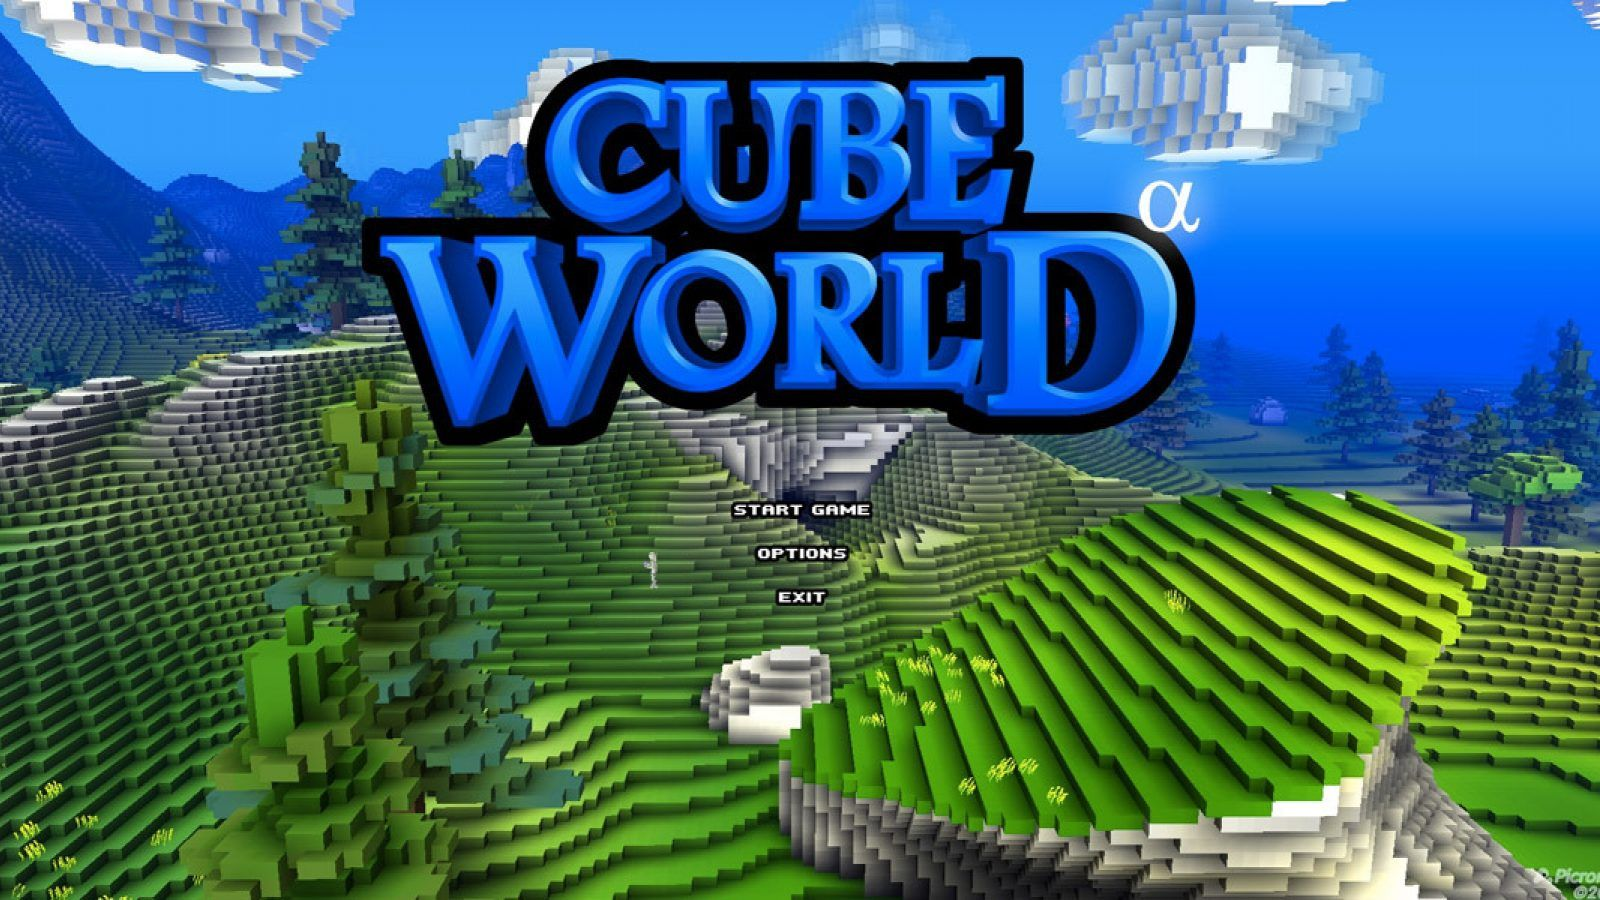 Cube World How To Heal Tips And Tricks Cube World World Food Animals